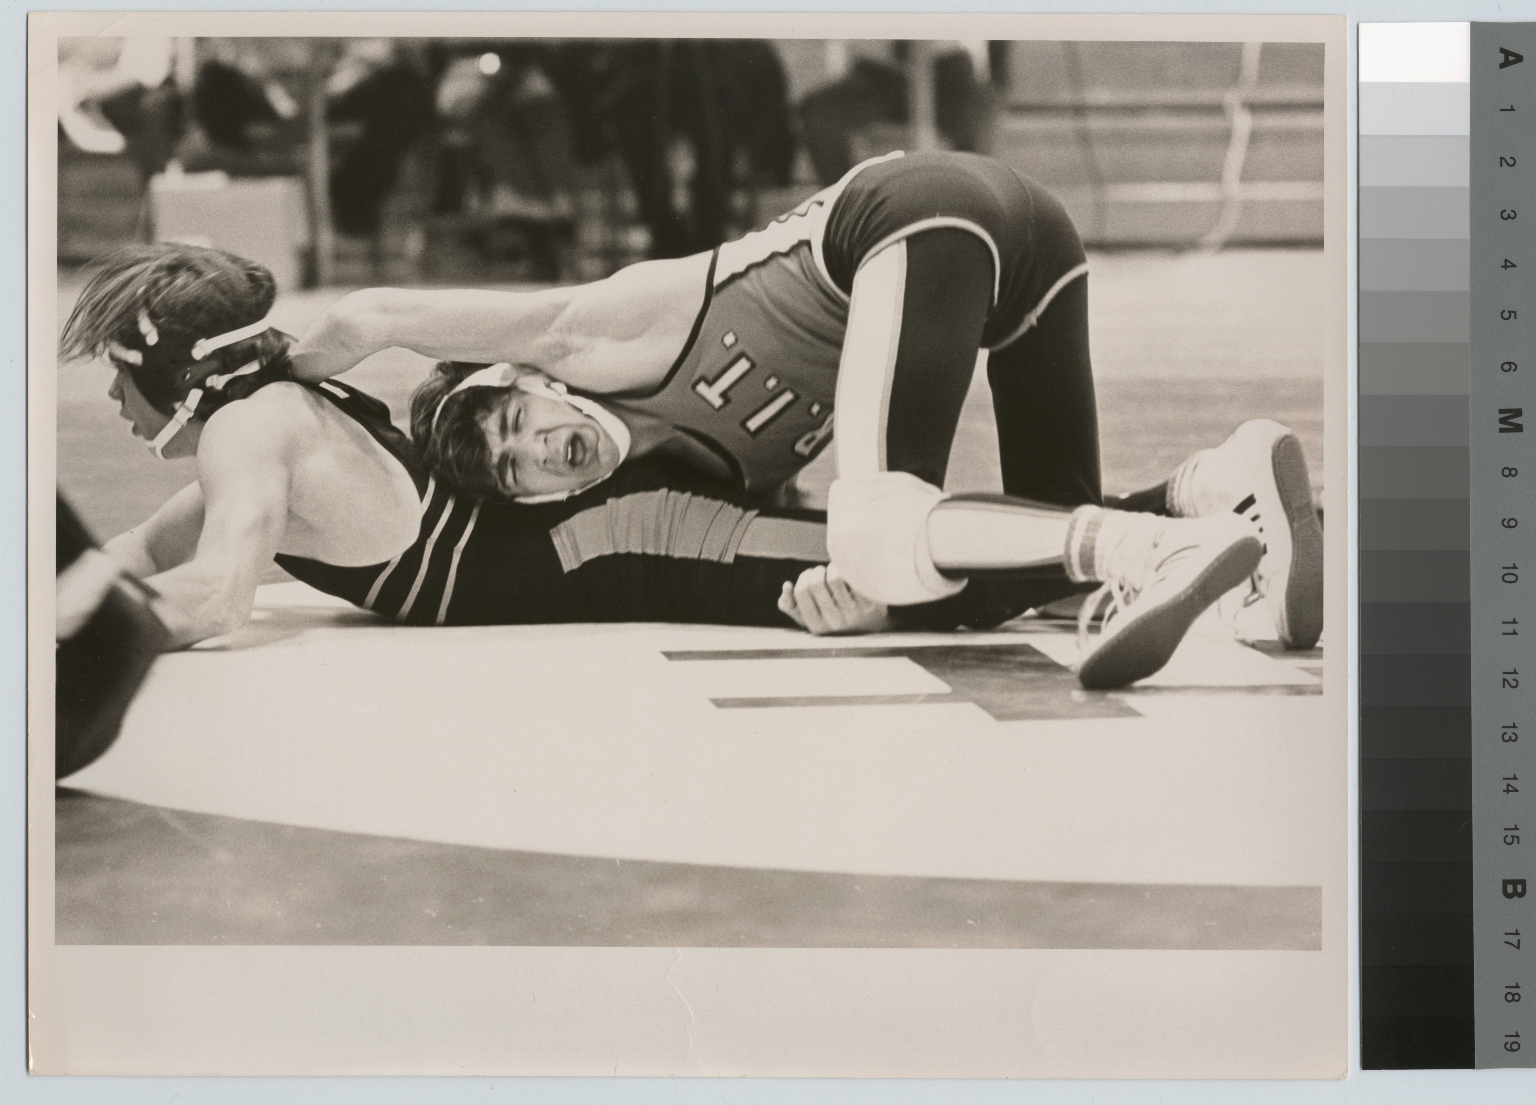 Student activities. Wrestling match between a Rochester Institute of Technology wrestler and an unidentified opponent, [1968-1980]